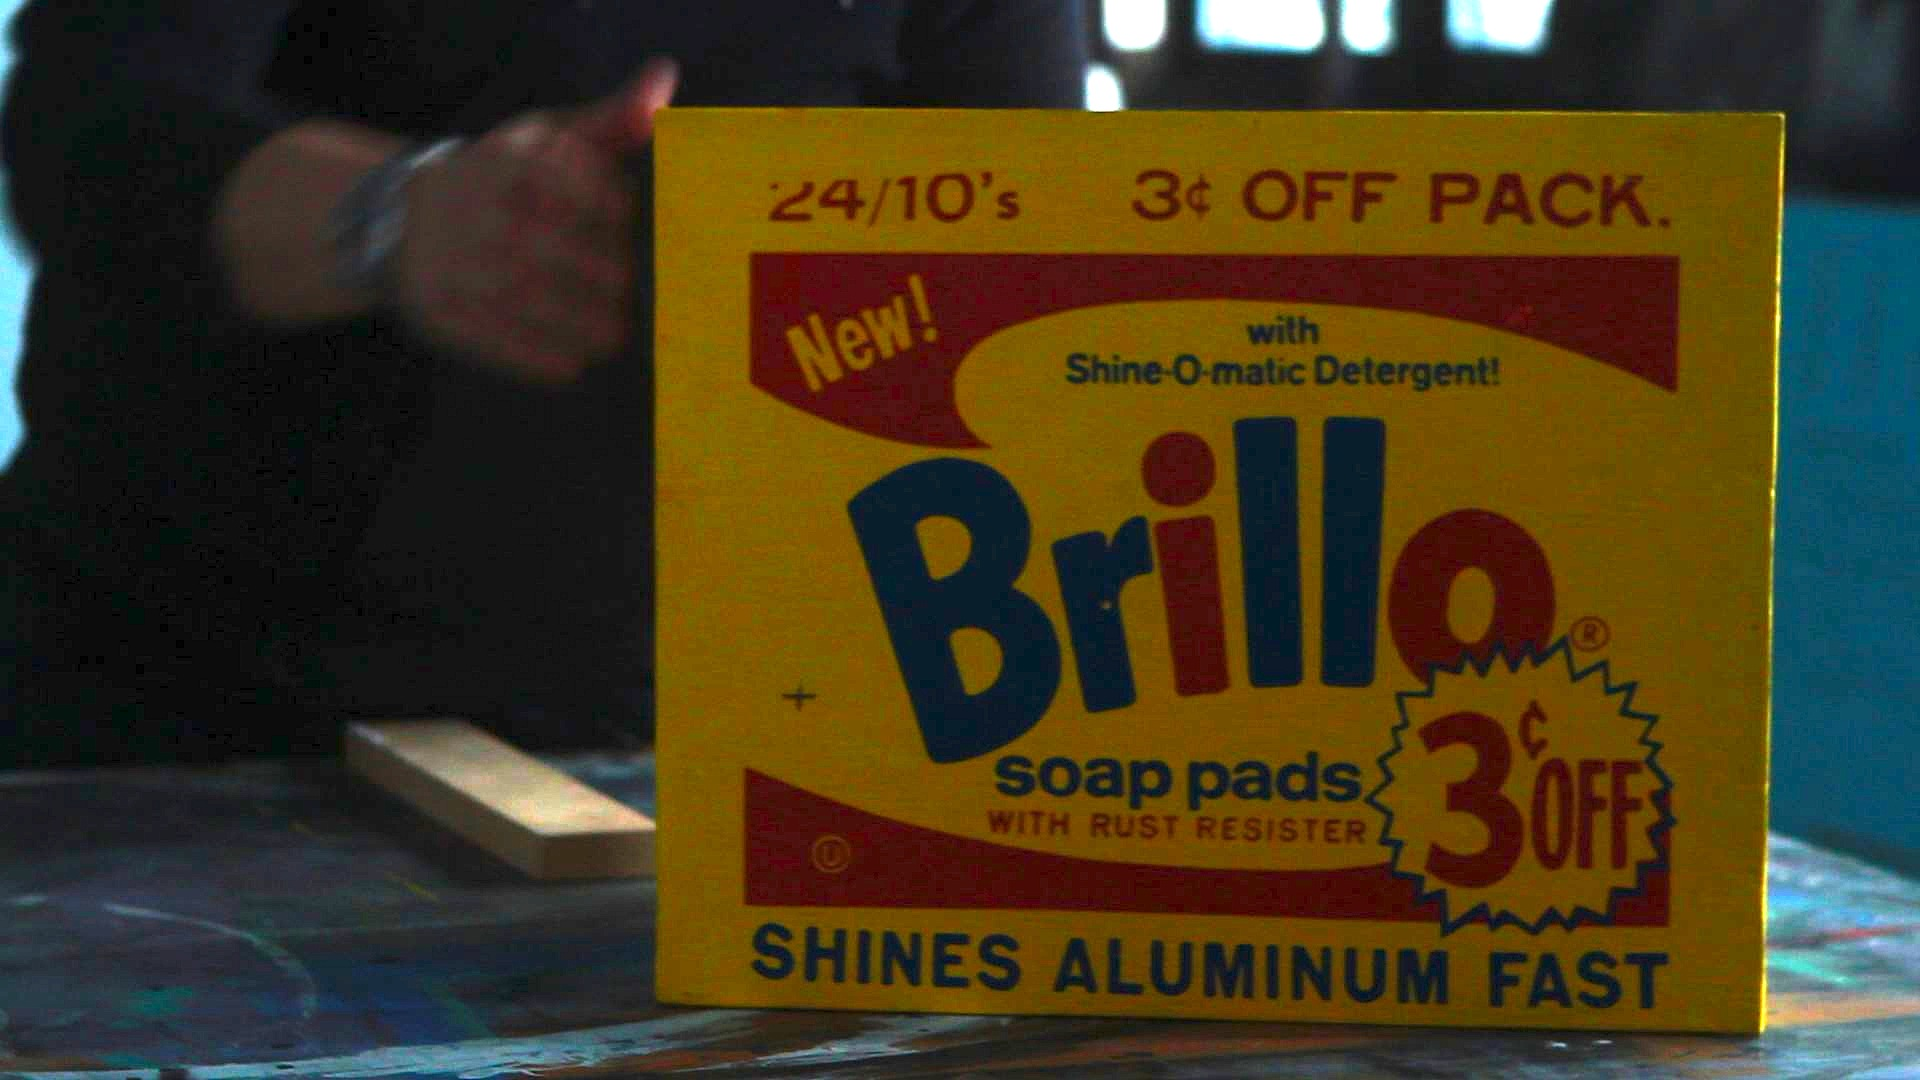 FEATURED IN IMAGE: Baby Lisanne Skyler on the Brillo Box, 1969. Courtesy of The Andy Warhol Foundation for the Visual Arts, Inc./Armaly Brands/Brillo Box Documentary LLC